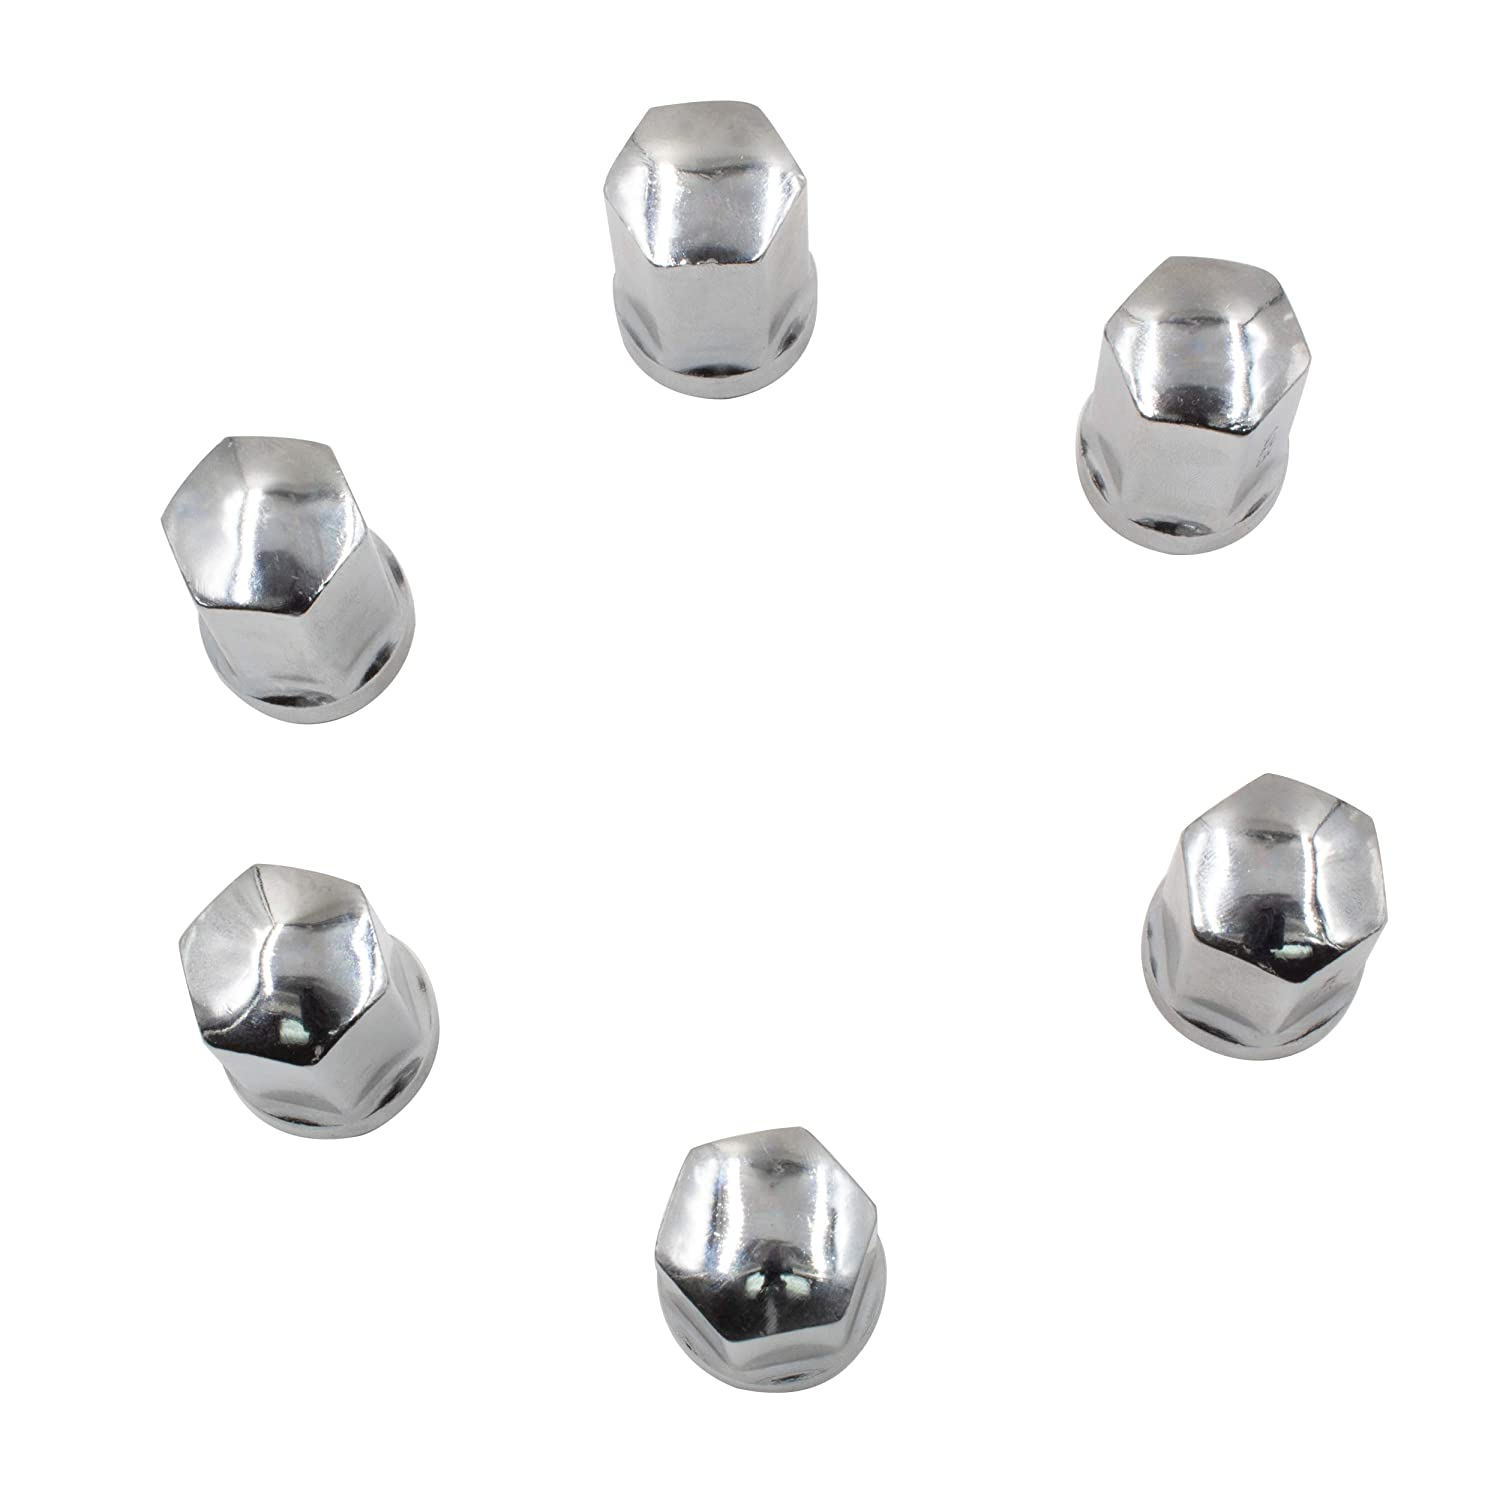 Chrome 1.77 Long OEM Factory Style Direct Replacement Lug Nuts Fits 2000-2020 Chevy Silverado Tahoe Suburban Avalanche Dodge Ram Wheel Accessories Parts Set of 24 Lug Nut M14x1.5